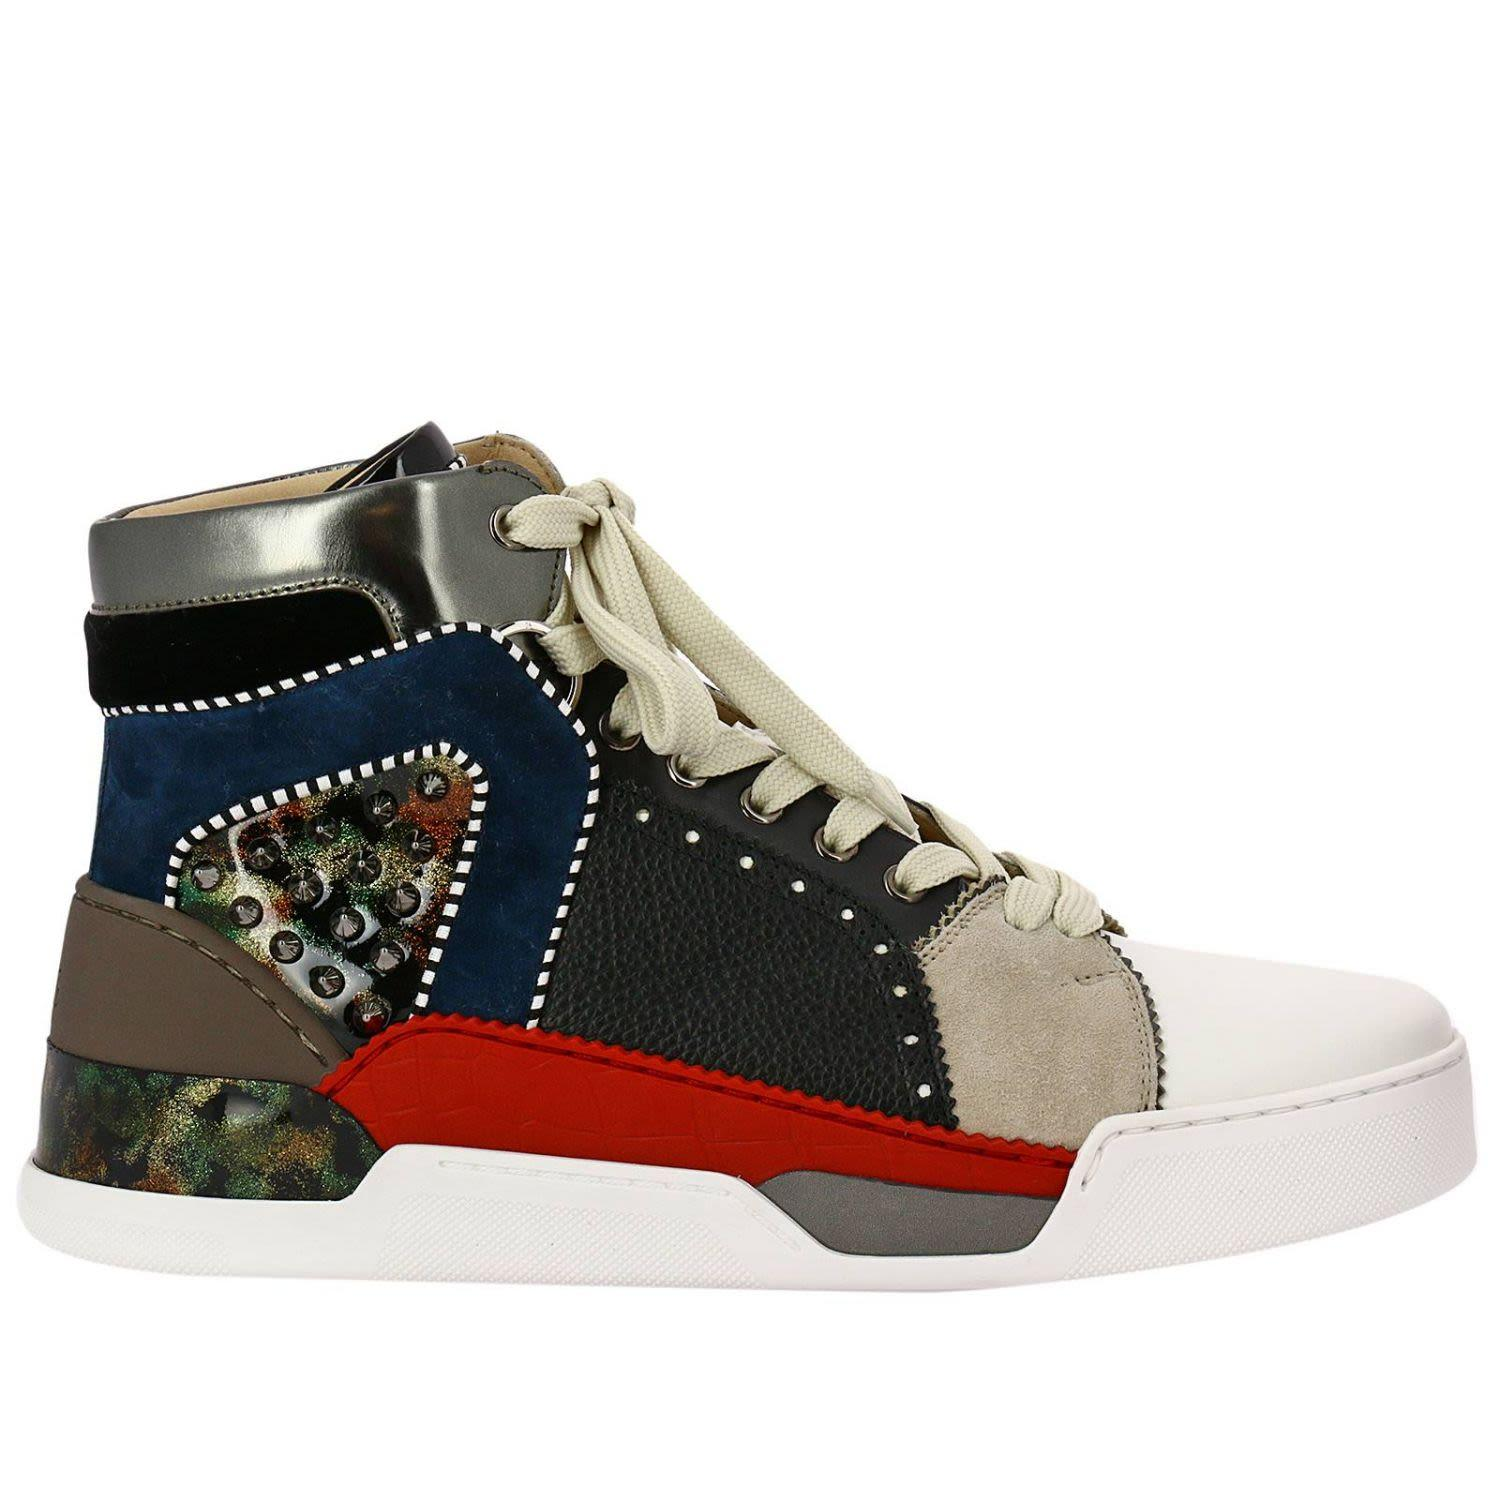 brand new 71738 88e78 Sneakers Shoes Men Christian Louboutin in Multicolor